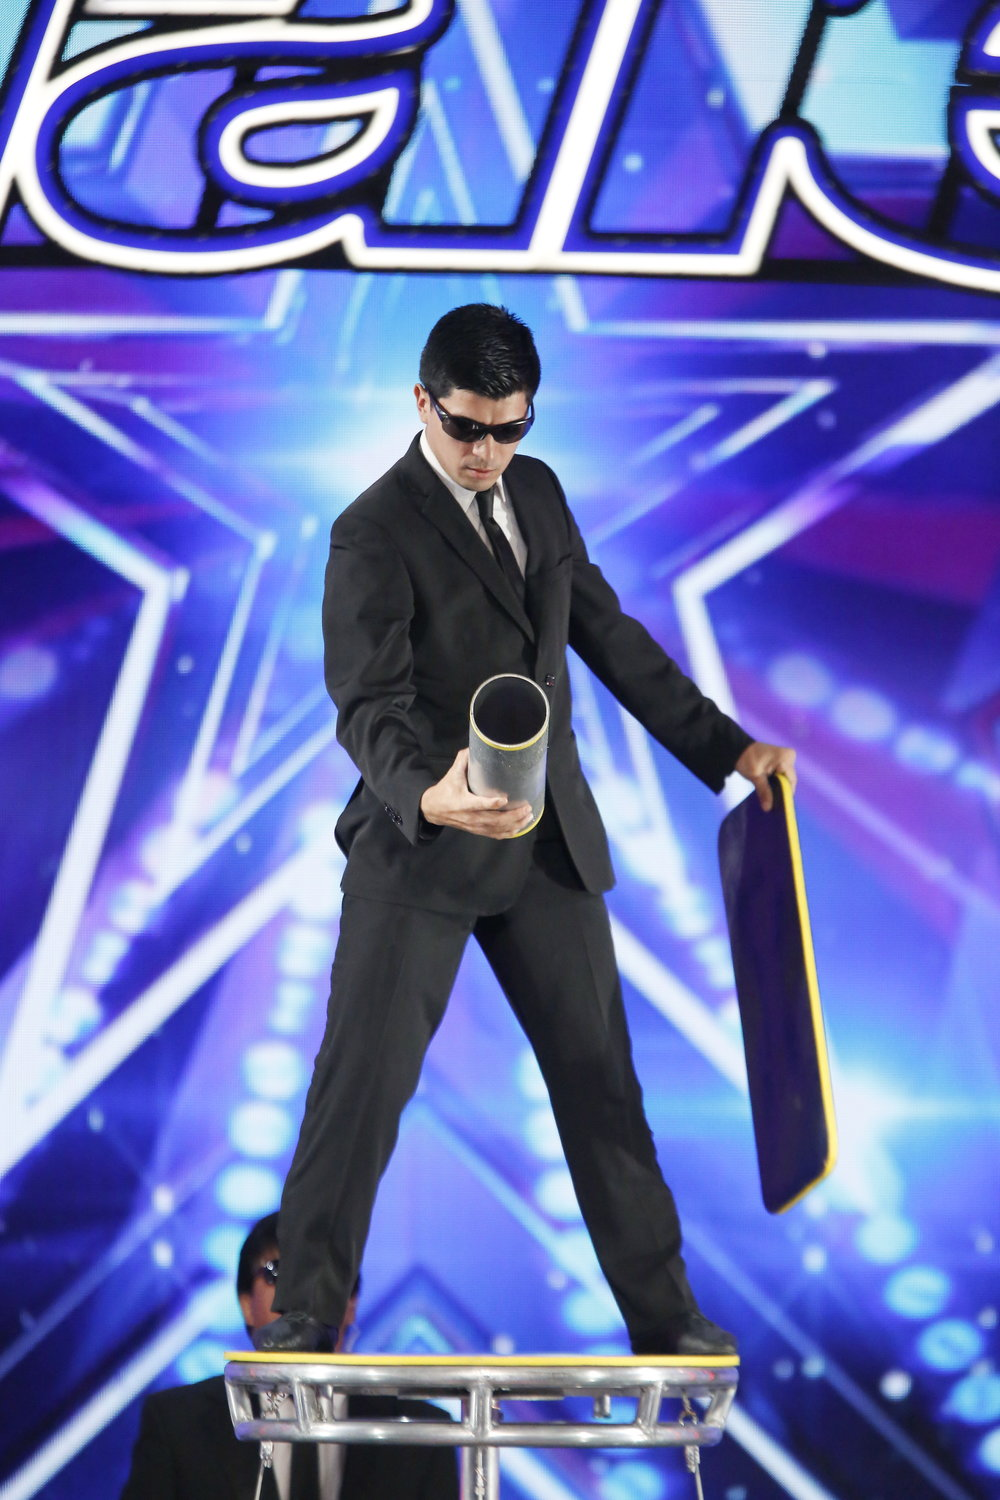 Jonathan preparing for his Rolla Bolla Audition, America's Got Talent S12